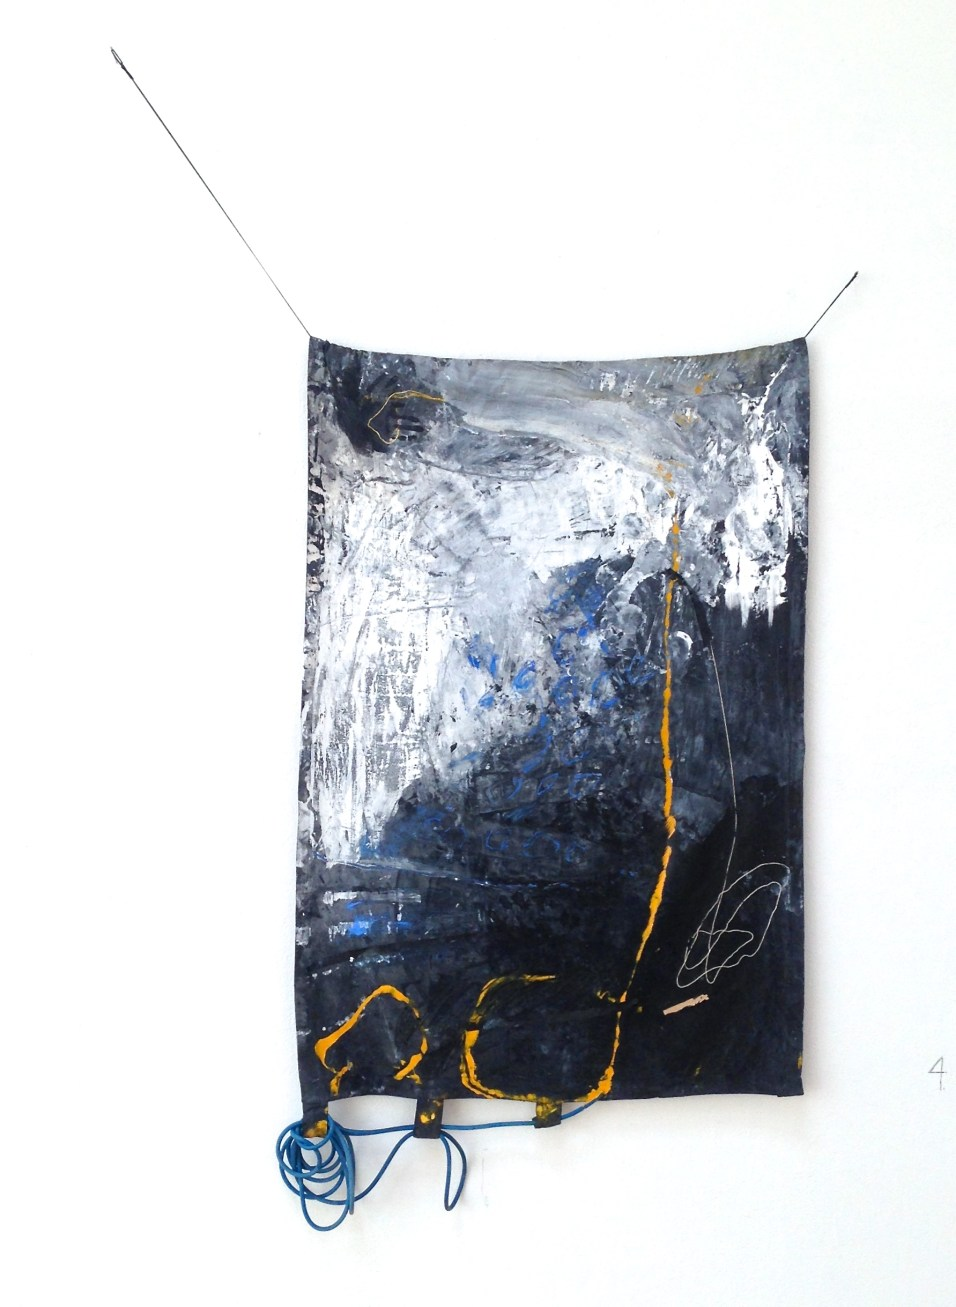 How I Hold It - latex and acrylic paints, tape, string, pastel, elastic cord, and exercise bands on canvas - 69x40 inches - 2015